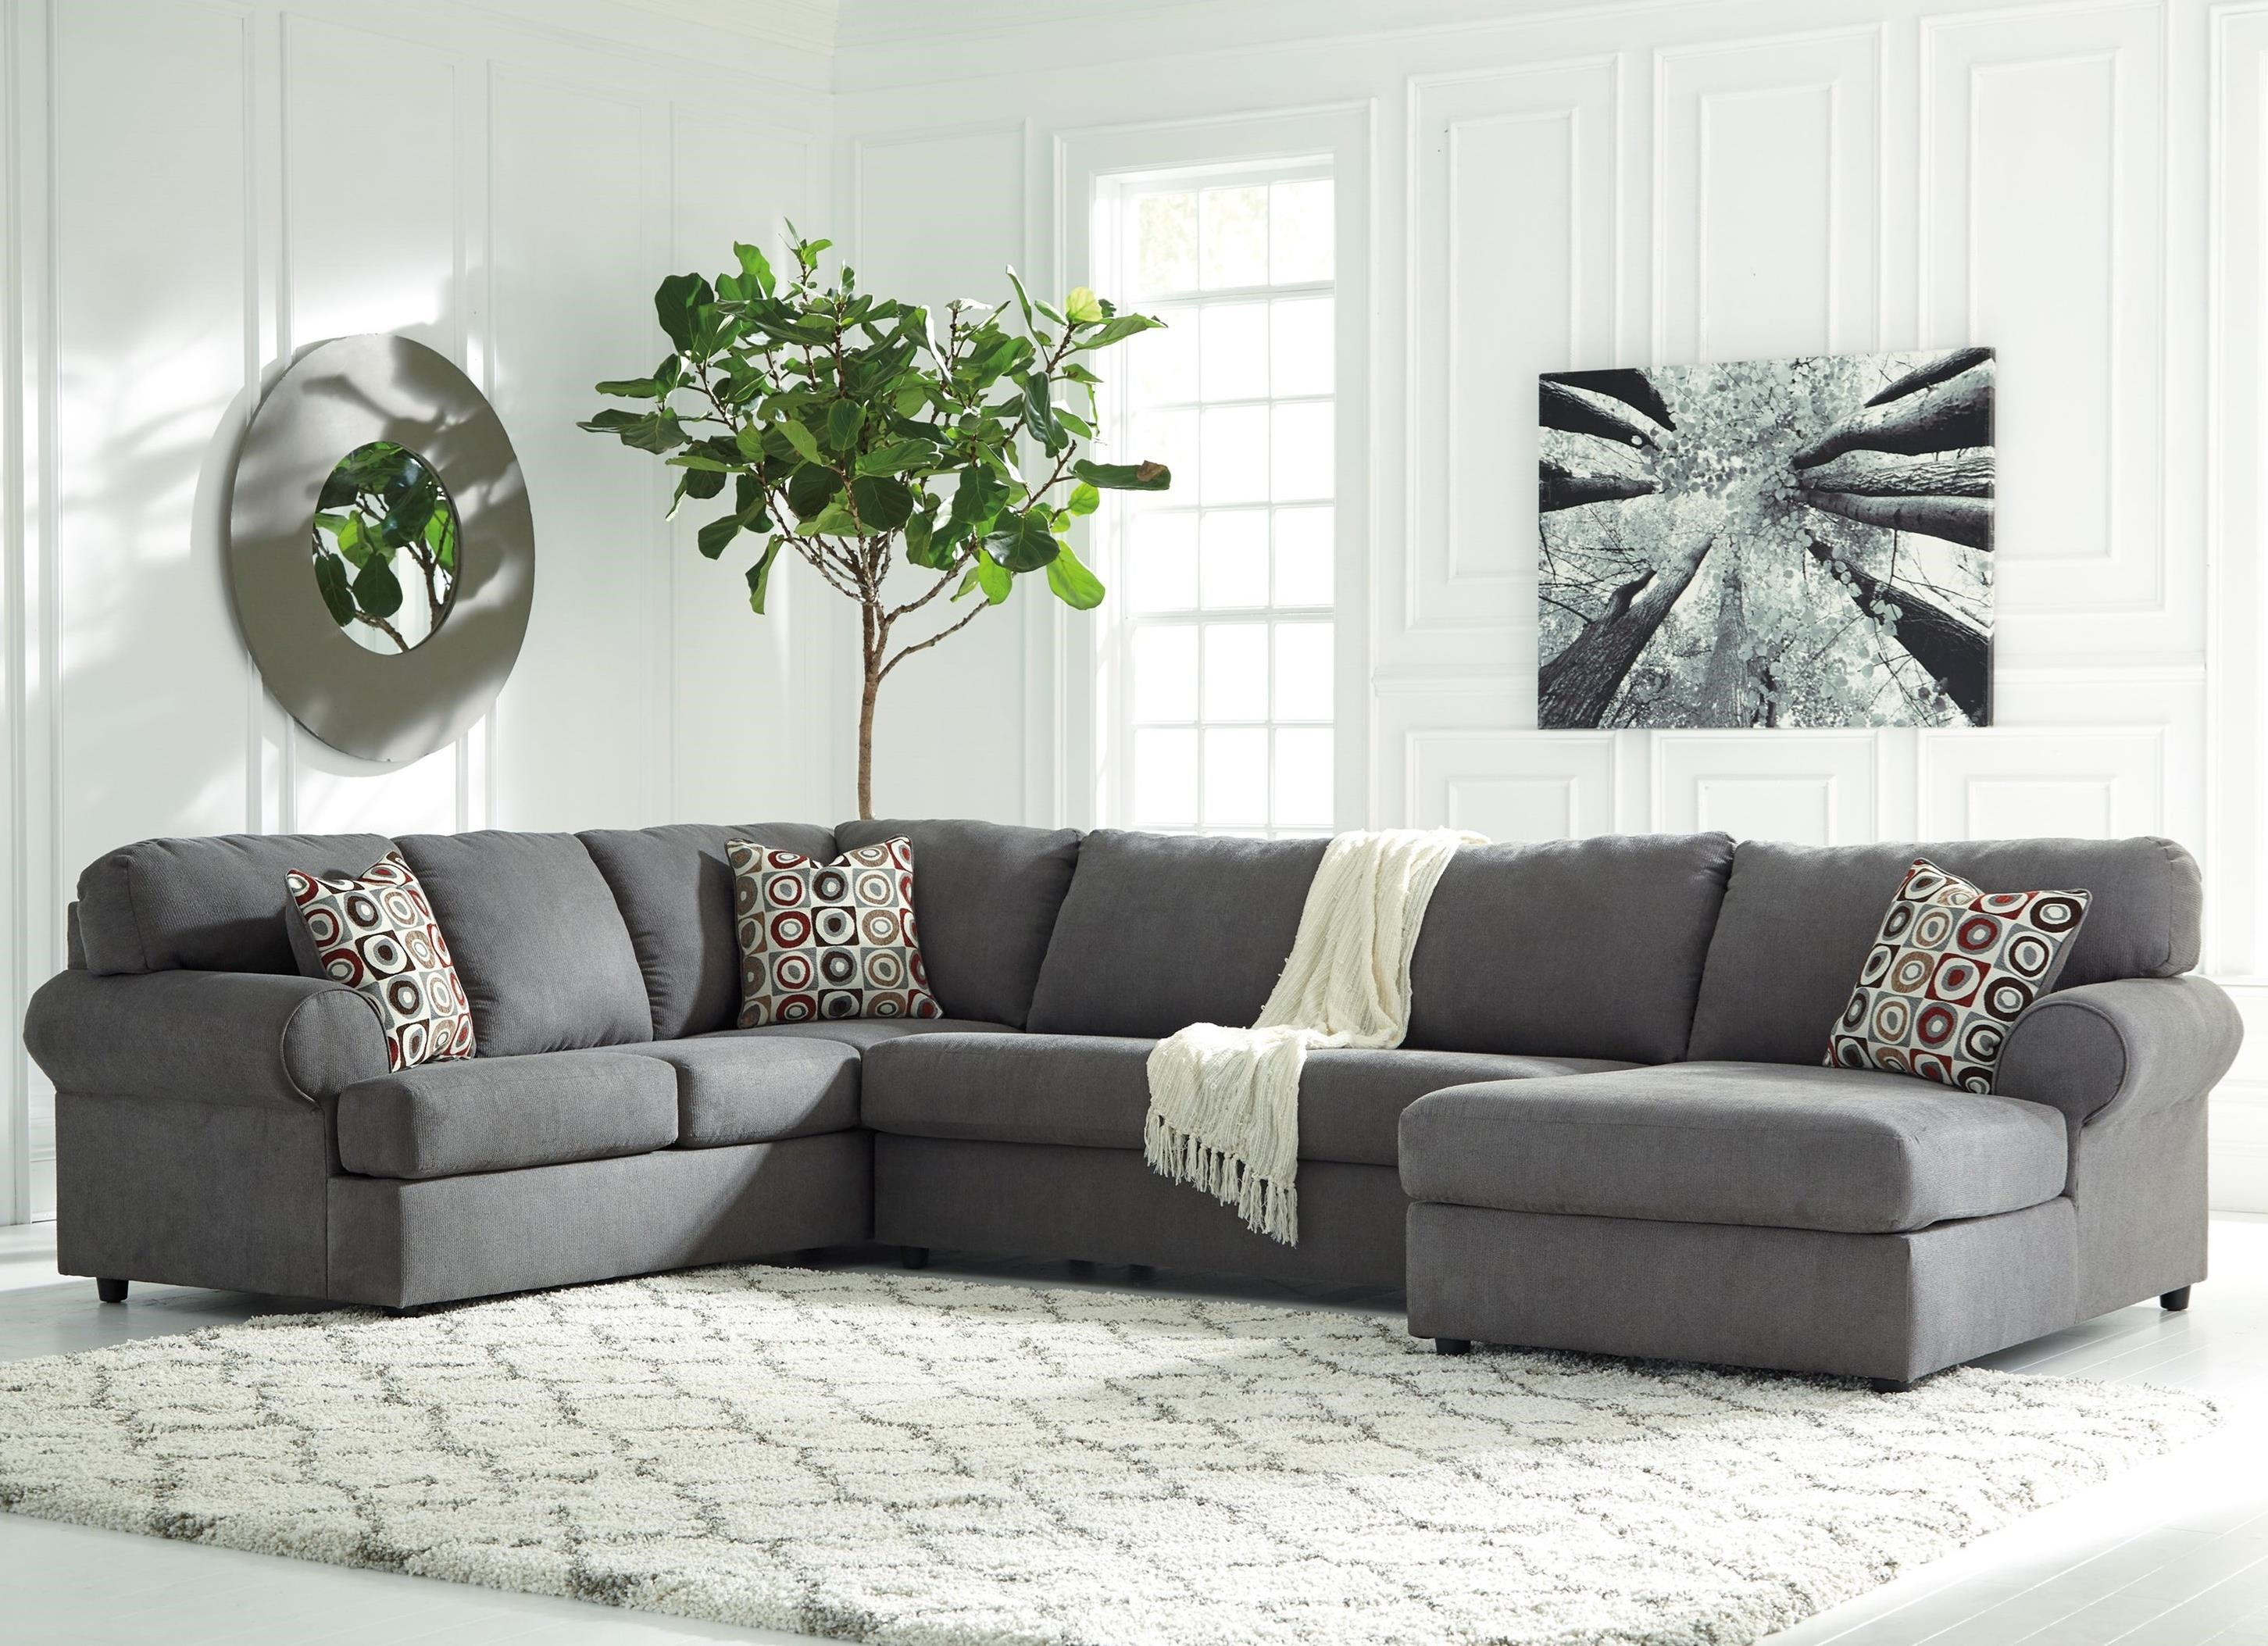 signature design by ashley jayceon 3 piece sectional with right chaise olinde 39 s furniture. Black Bedroom Furniture Sets. Home Design Ideas